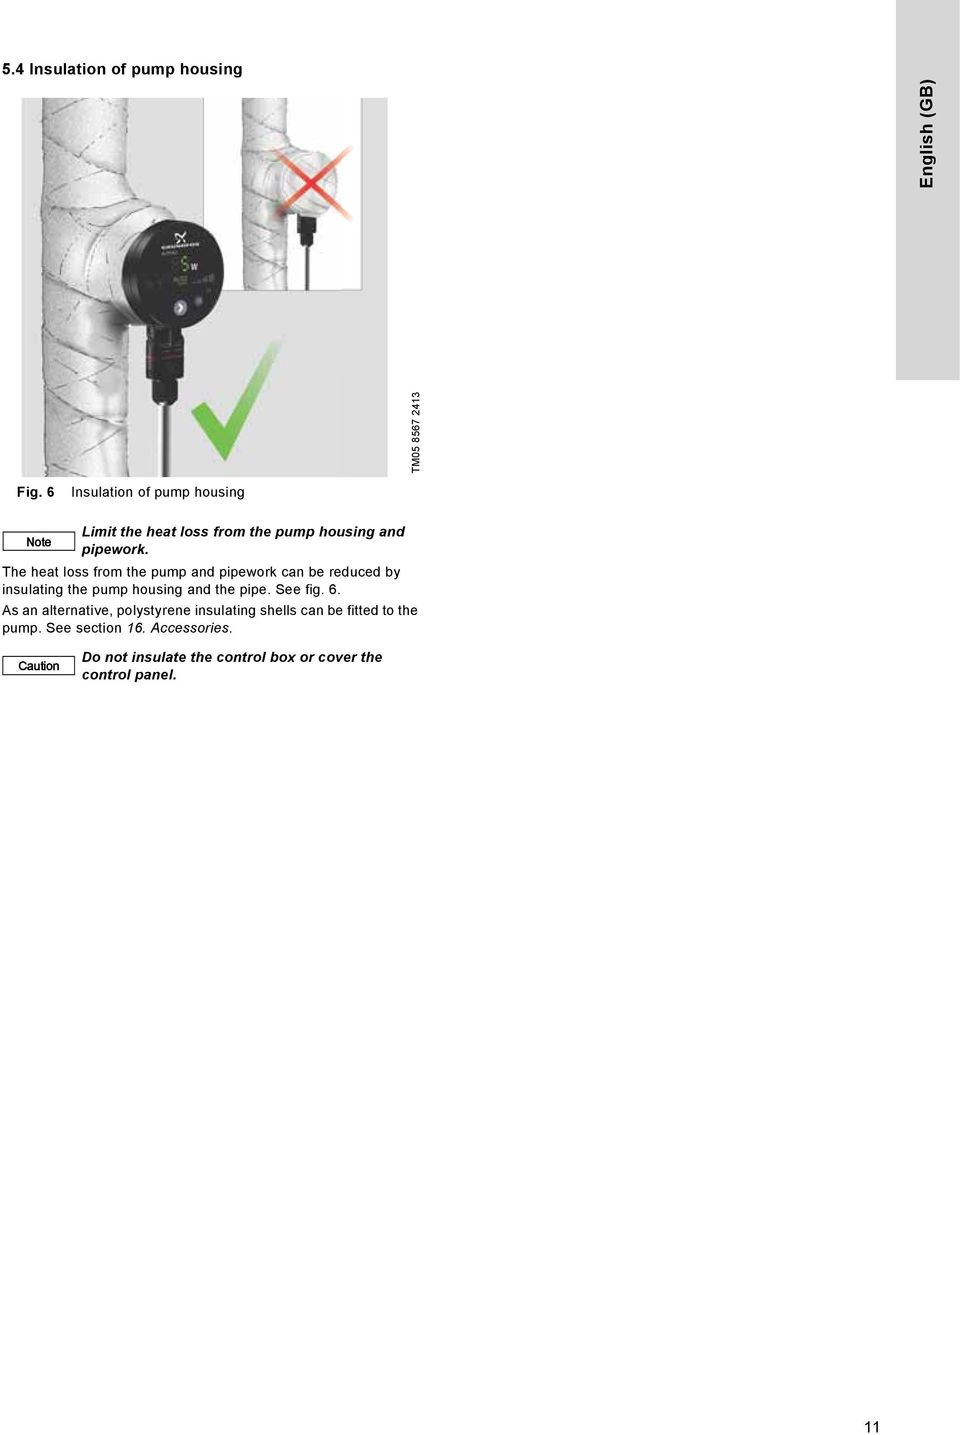 The heat loss from the pump and pipework can be reduced by insulating the pump housing and the pipe. See fig.